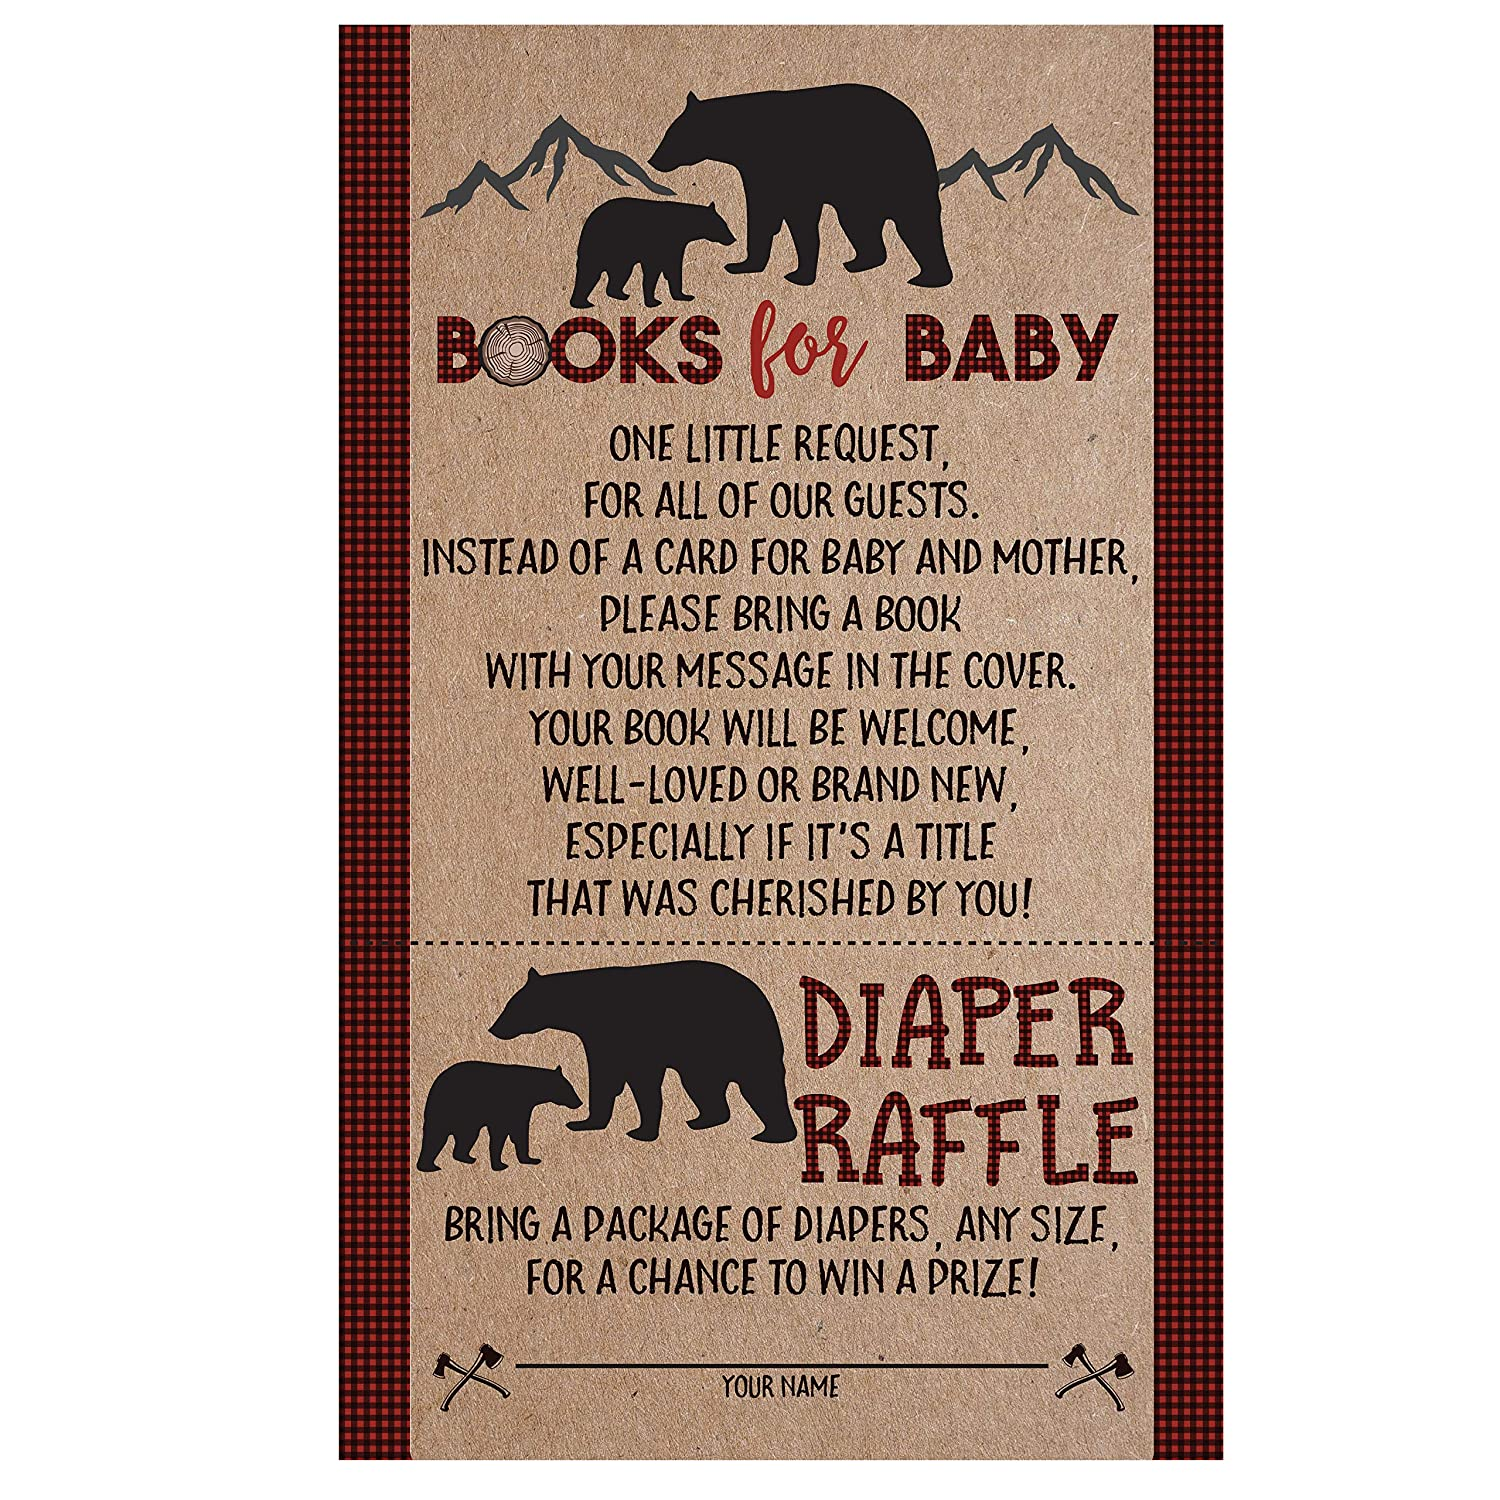 Lumberjack Baby Shower Bear Book Request Diaper Raffle Card, Lumberjack Book Request Card, Bear Diaper Raffle Card, 50 Count Your Main Event Prints